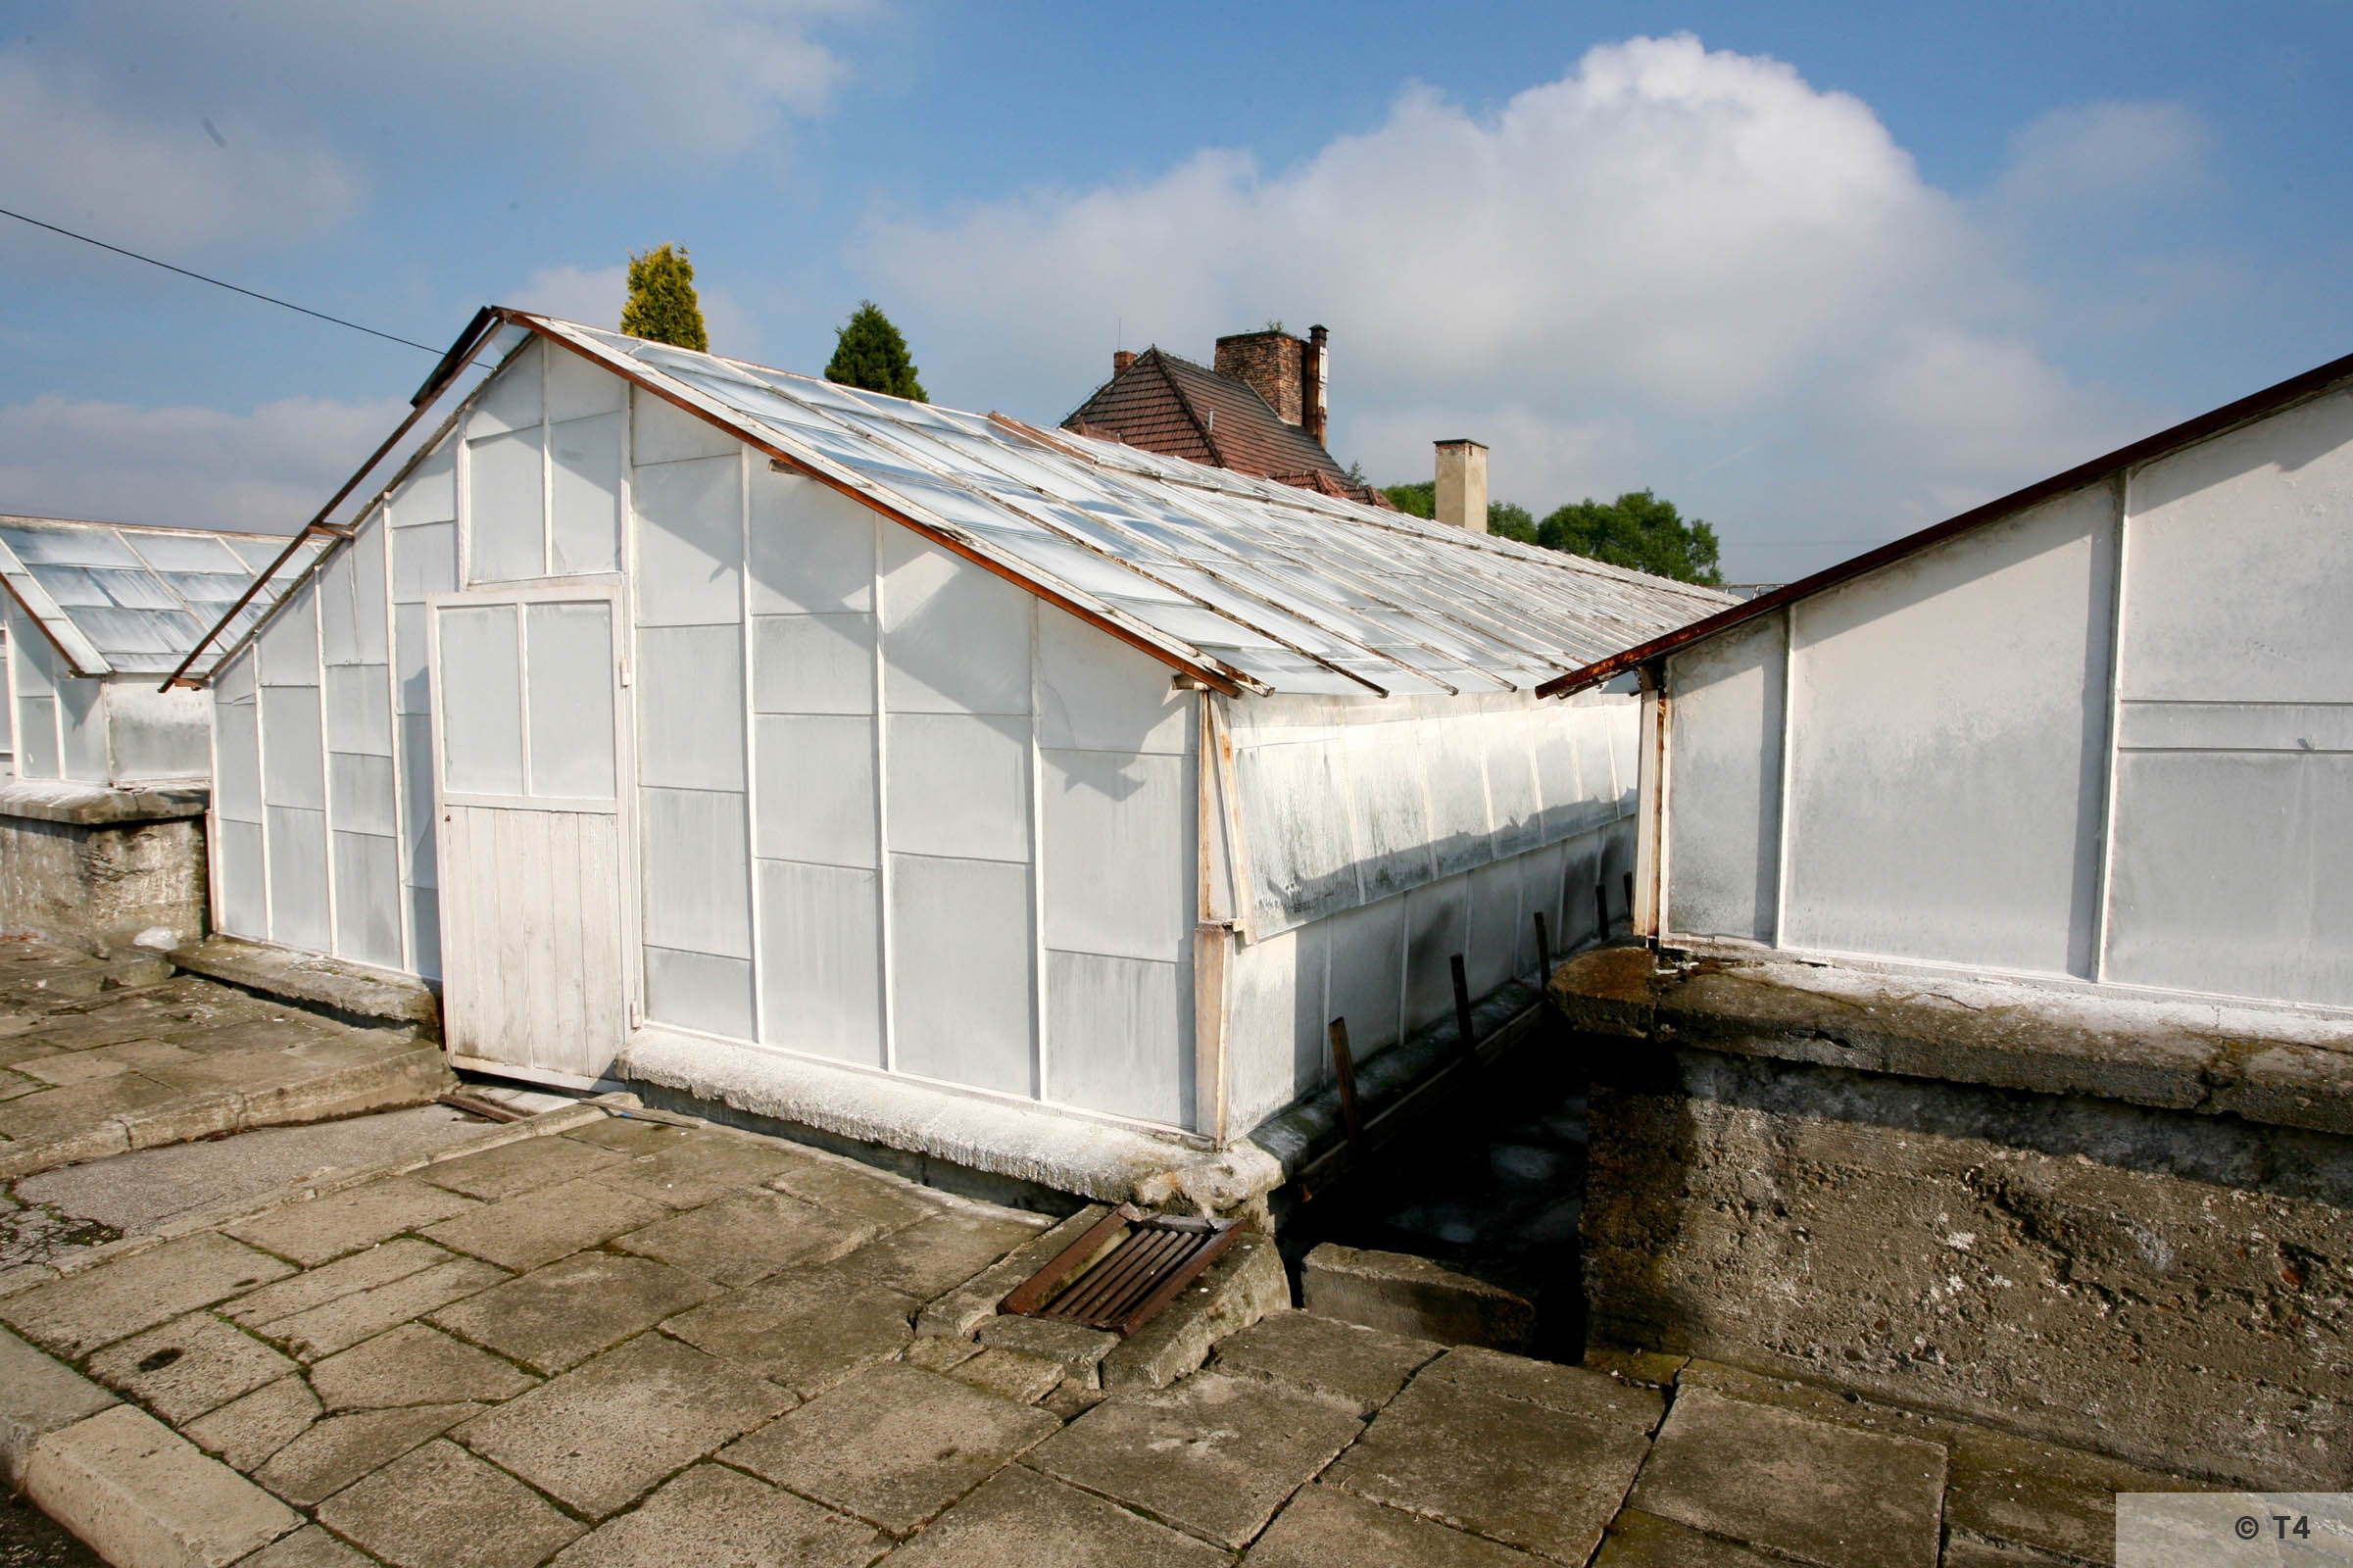 New greenhouses. Former horticultural laboratory in the background. 2006 T4 5135